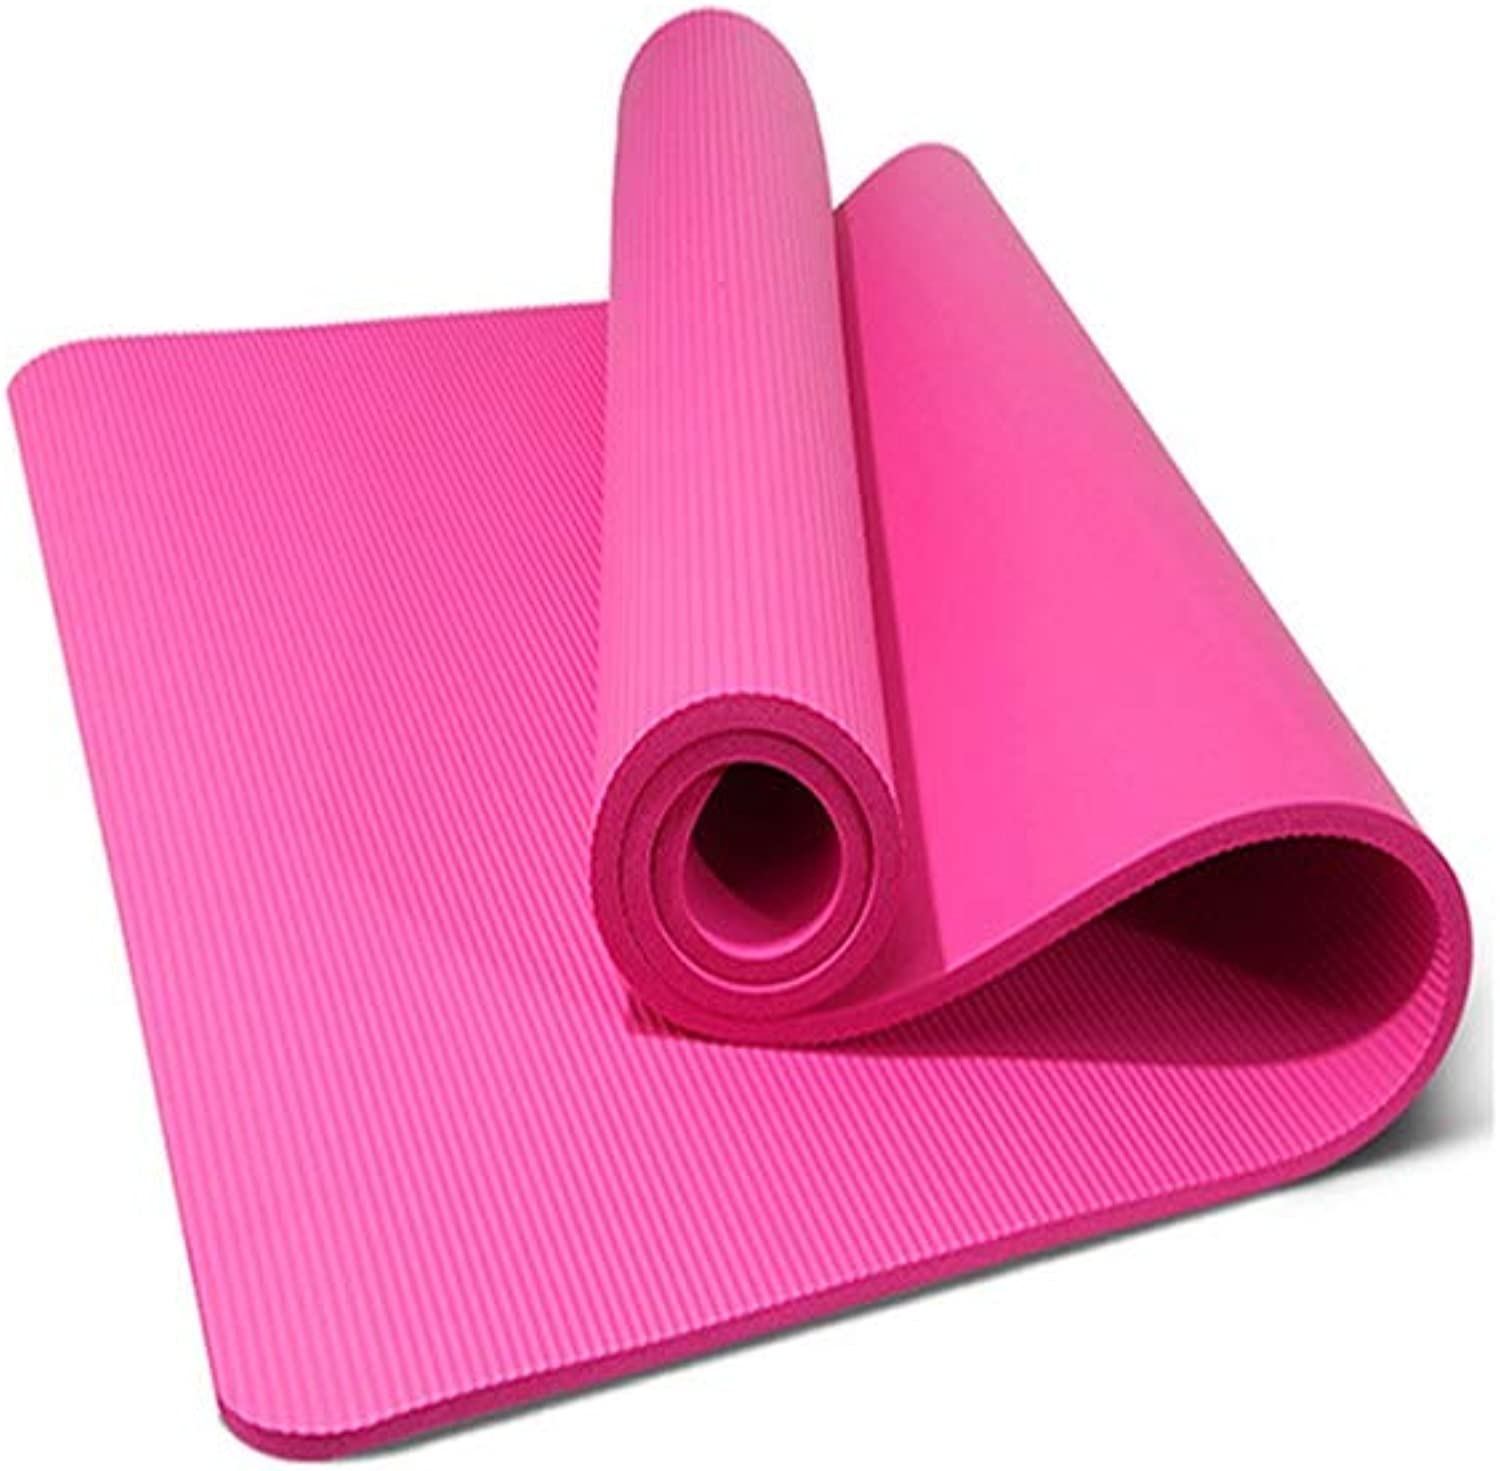 Exercise Fitness Yoga Mats H.ZHOU Nonslip Double Yoga Mat Backpack Carry Lace Environmental Predection 10mm Tasteless Moisture Proof Durable Light Motion Fitness 130cm Wide for Pilates SitUps Stretc